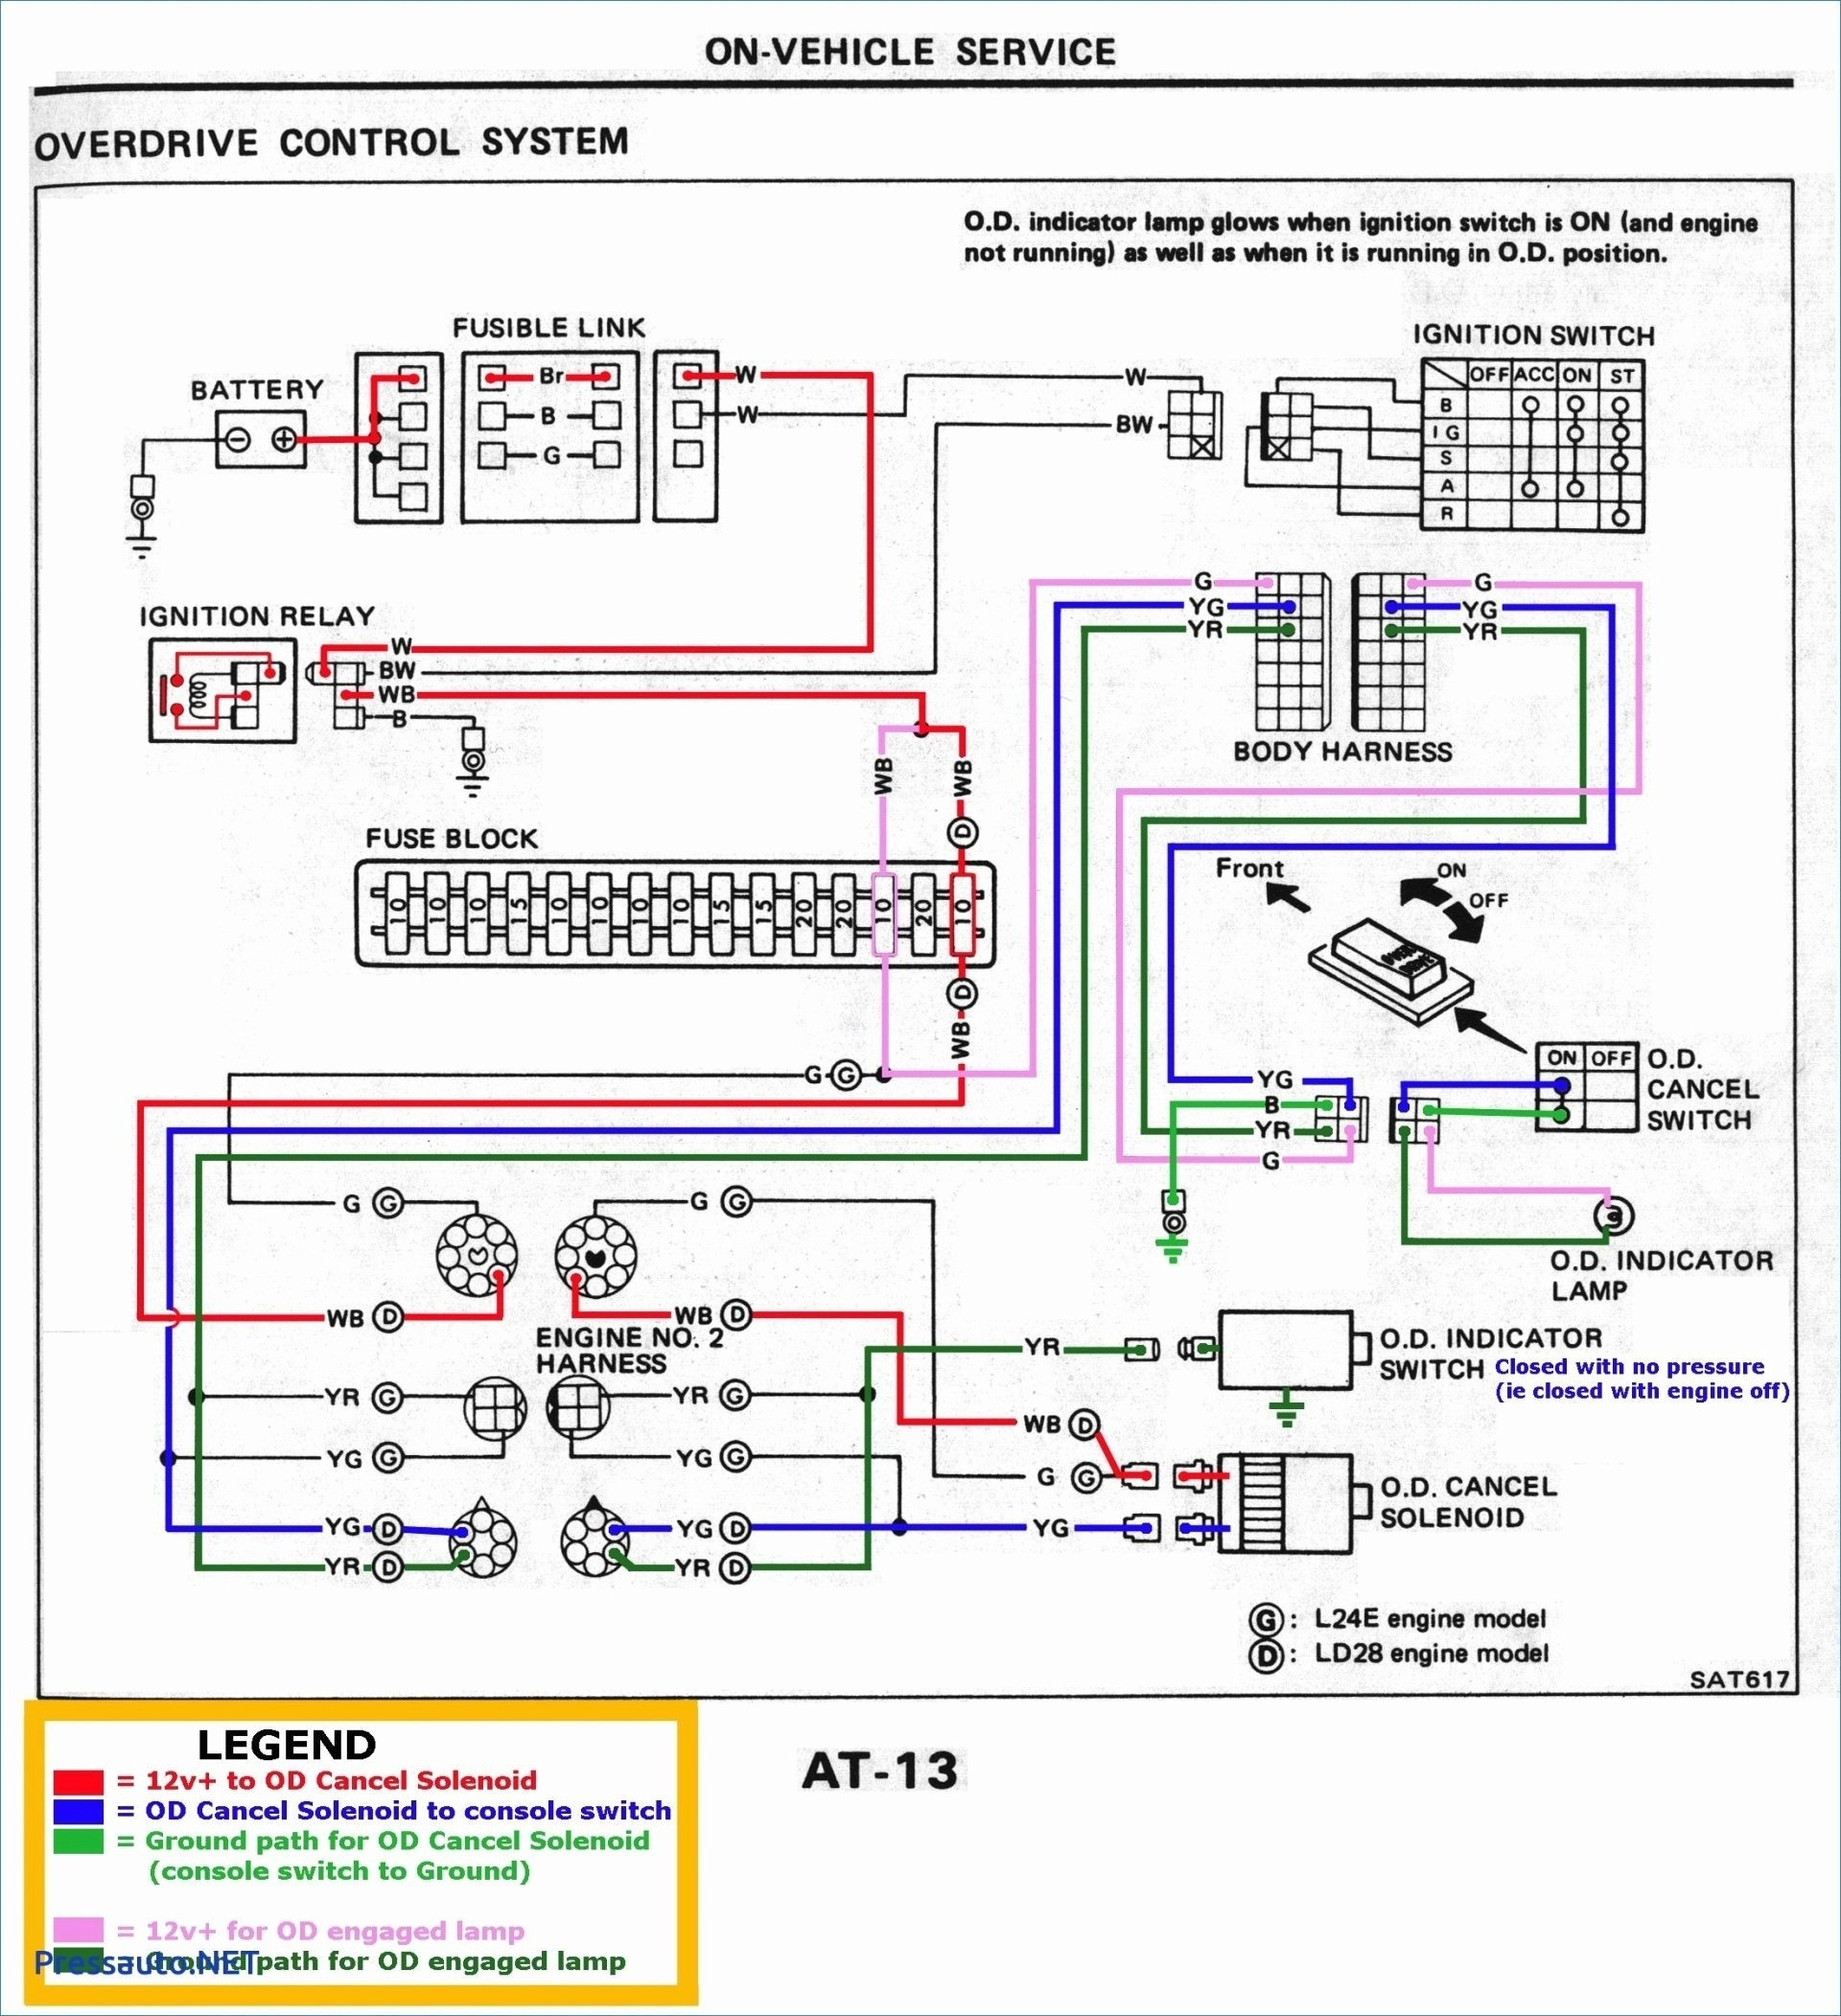 hight resolution of mg cab wiring diagram wiring diagram table led wiring diagram tir6 wiring diagram name mg cab